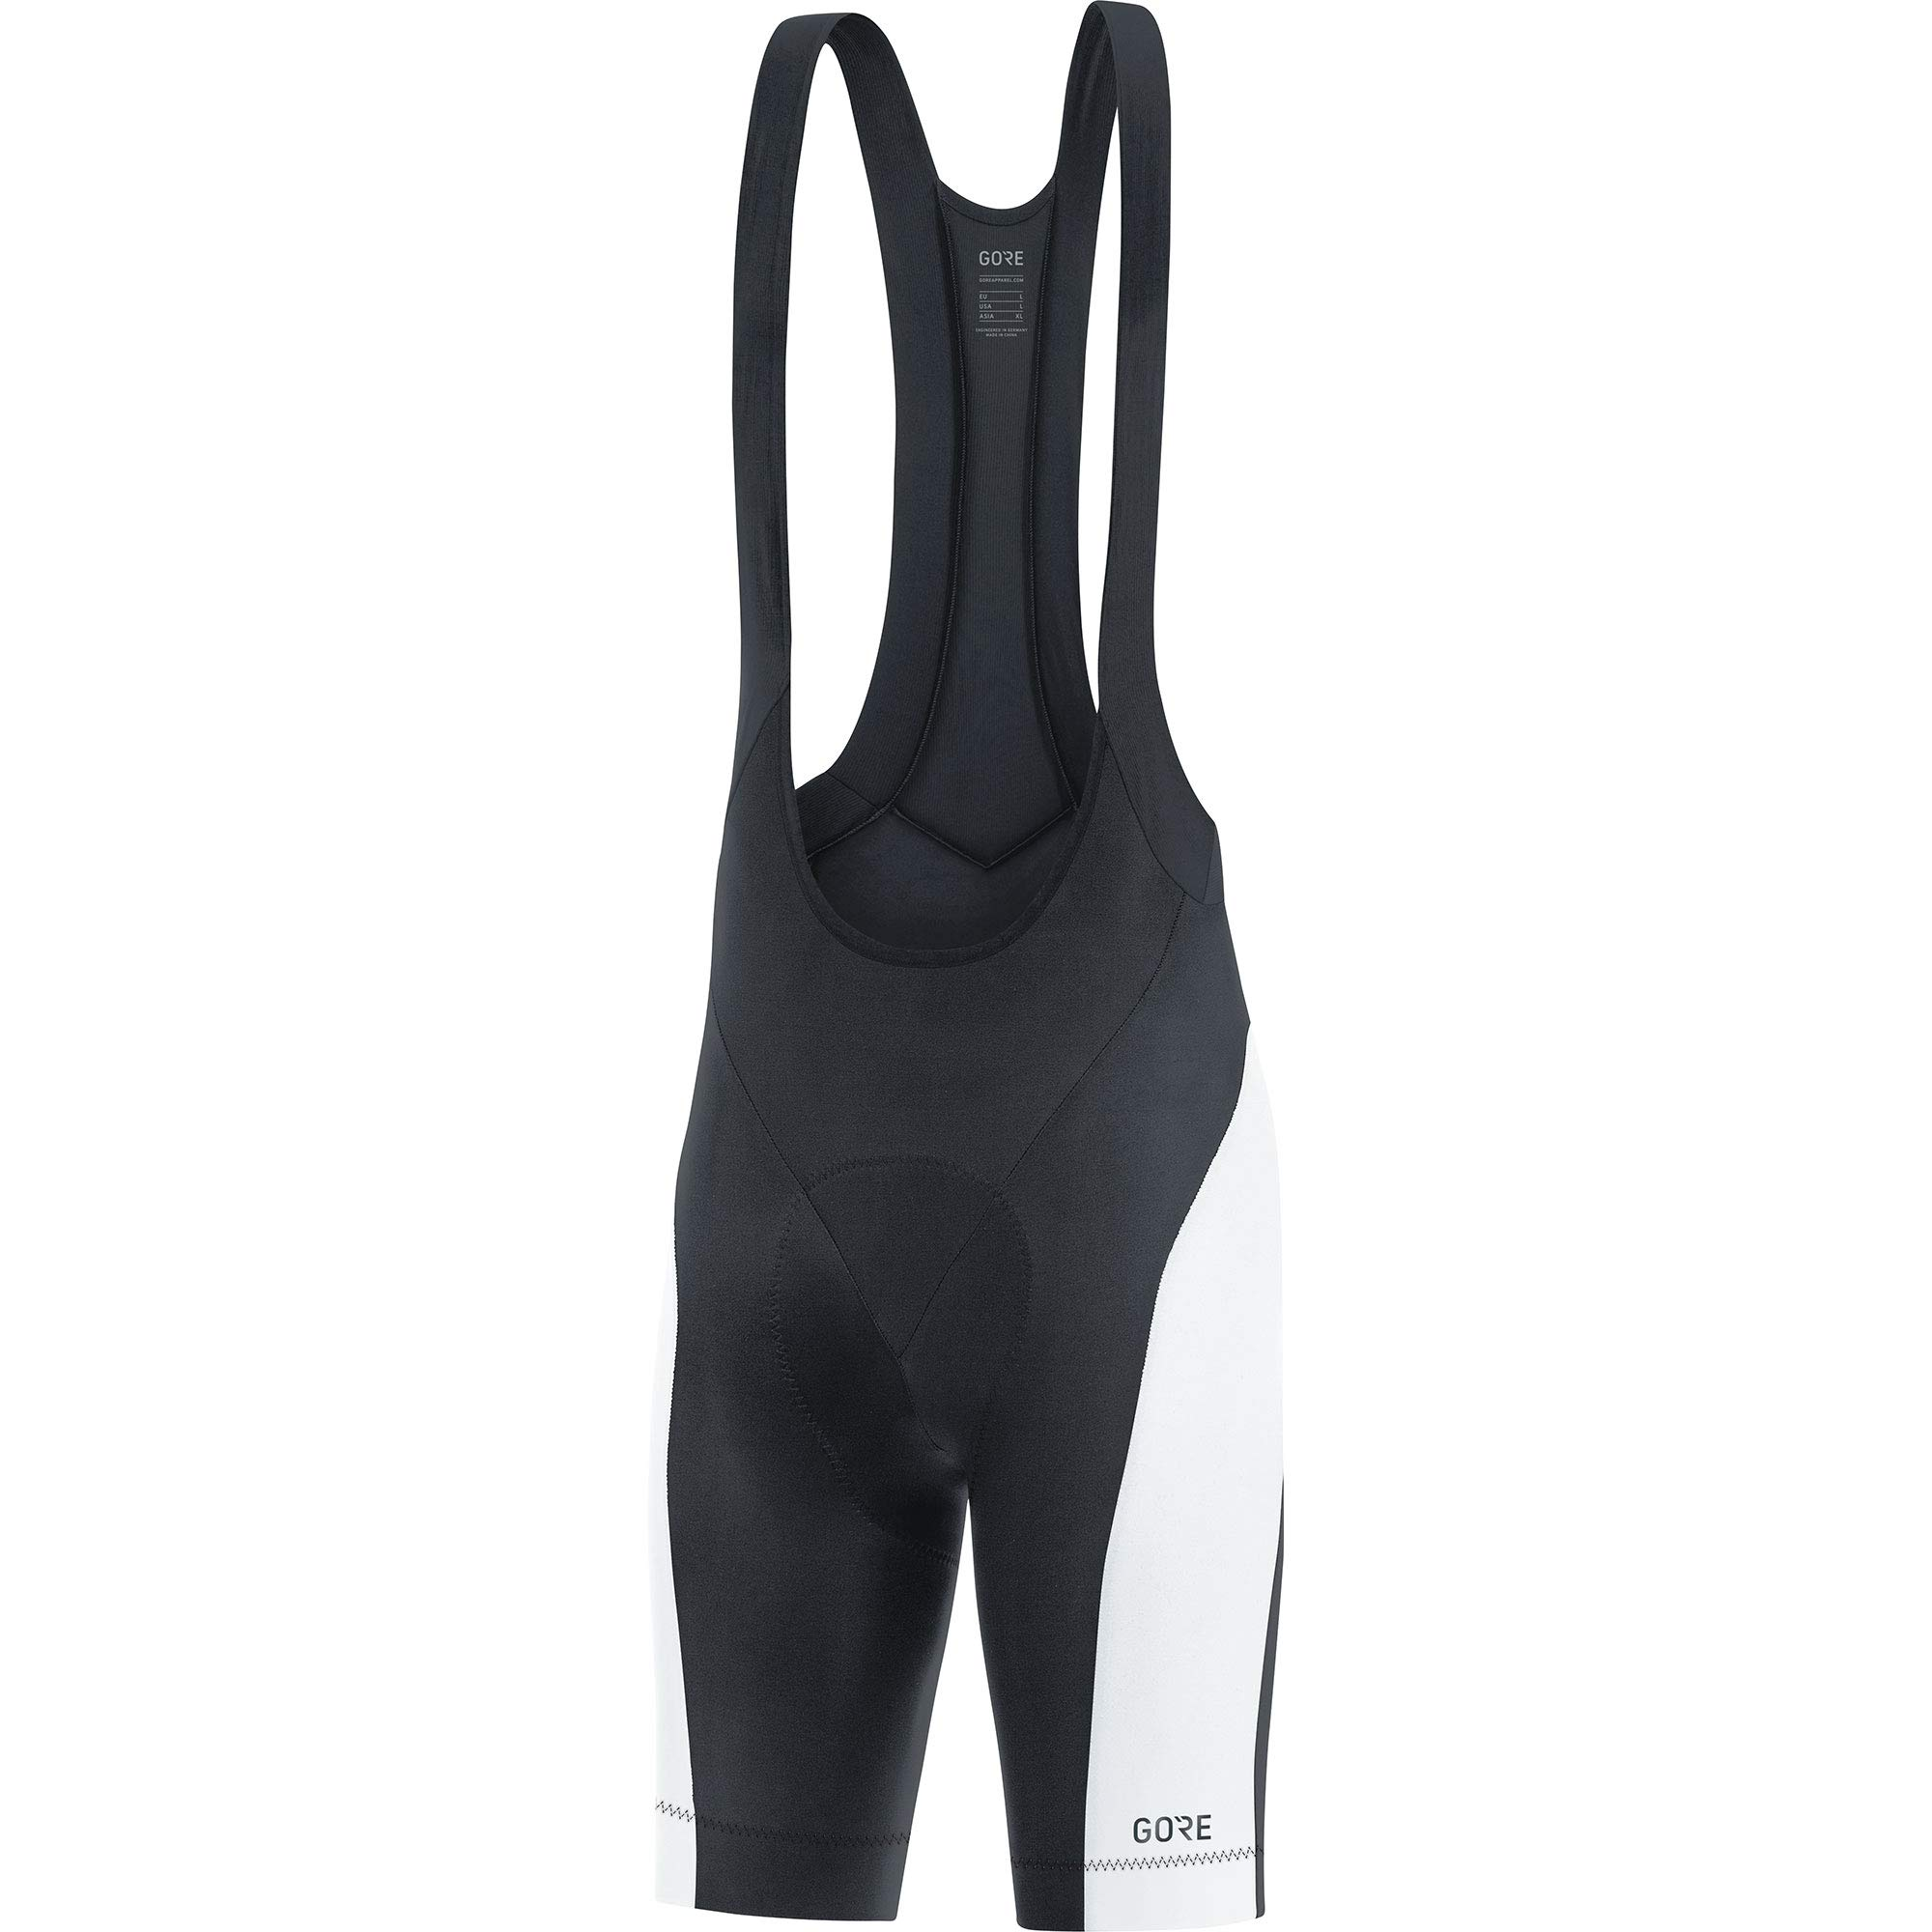 GORE WEAR C3 Men's Cycling Bib Shorts with Seat Insert, Size: M, Color: Black/White